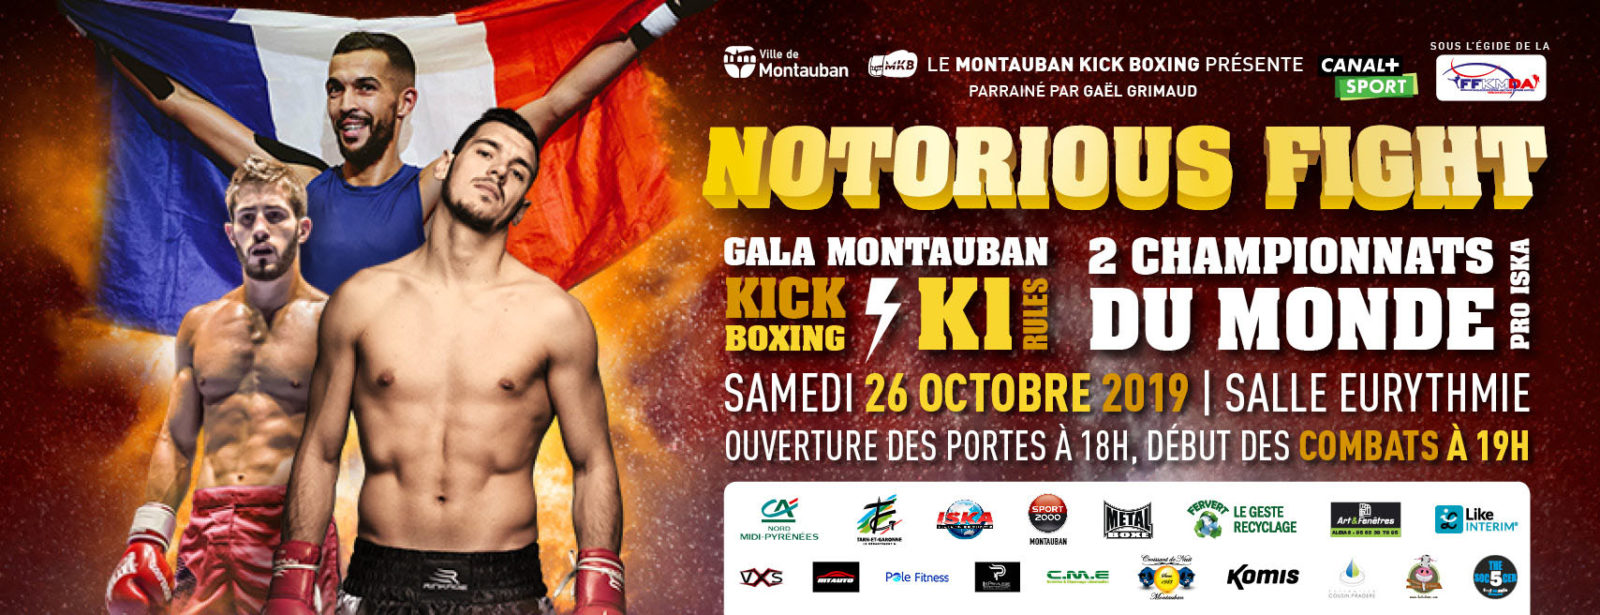 Soiree NOTORIOUS FIGHT